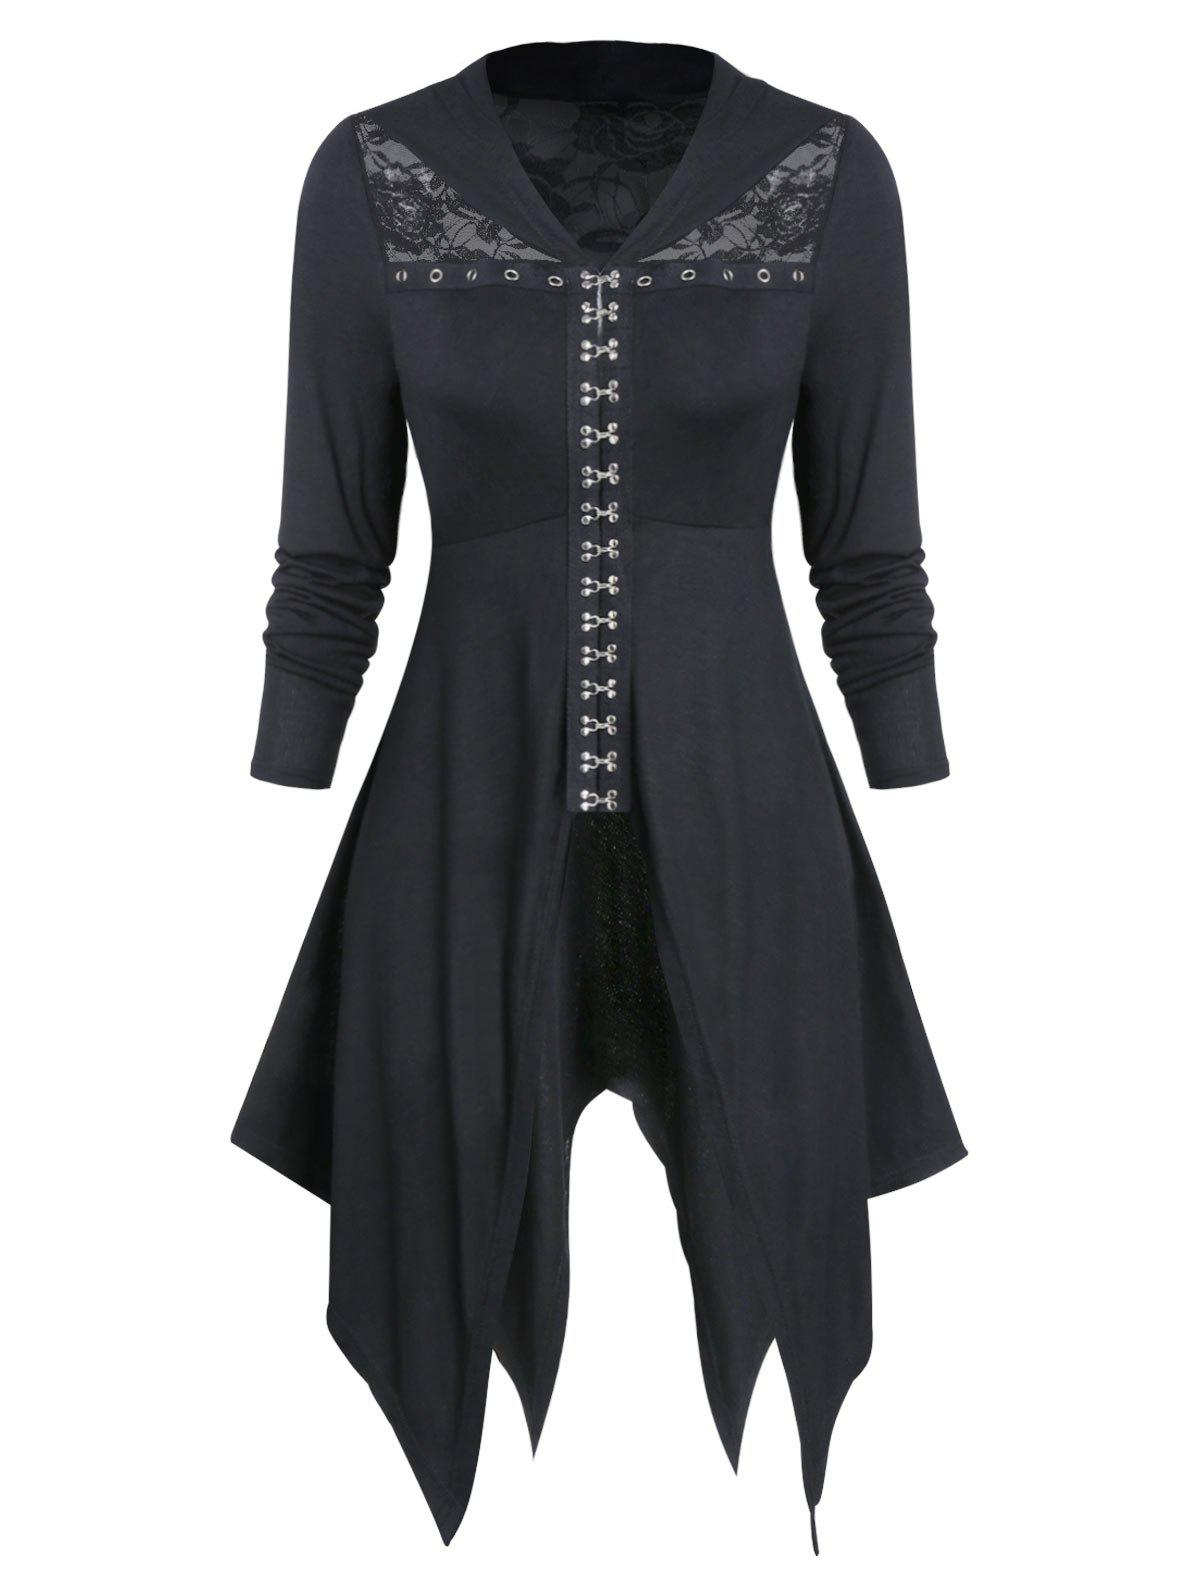 Chic Lace Insert Hook and Eye Gothic Hanky Hem Top